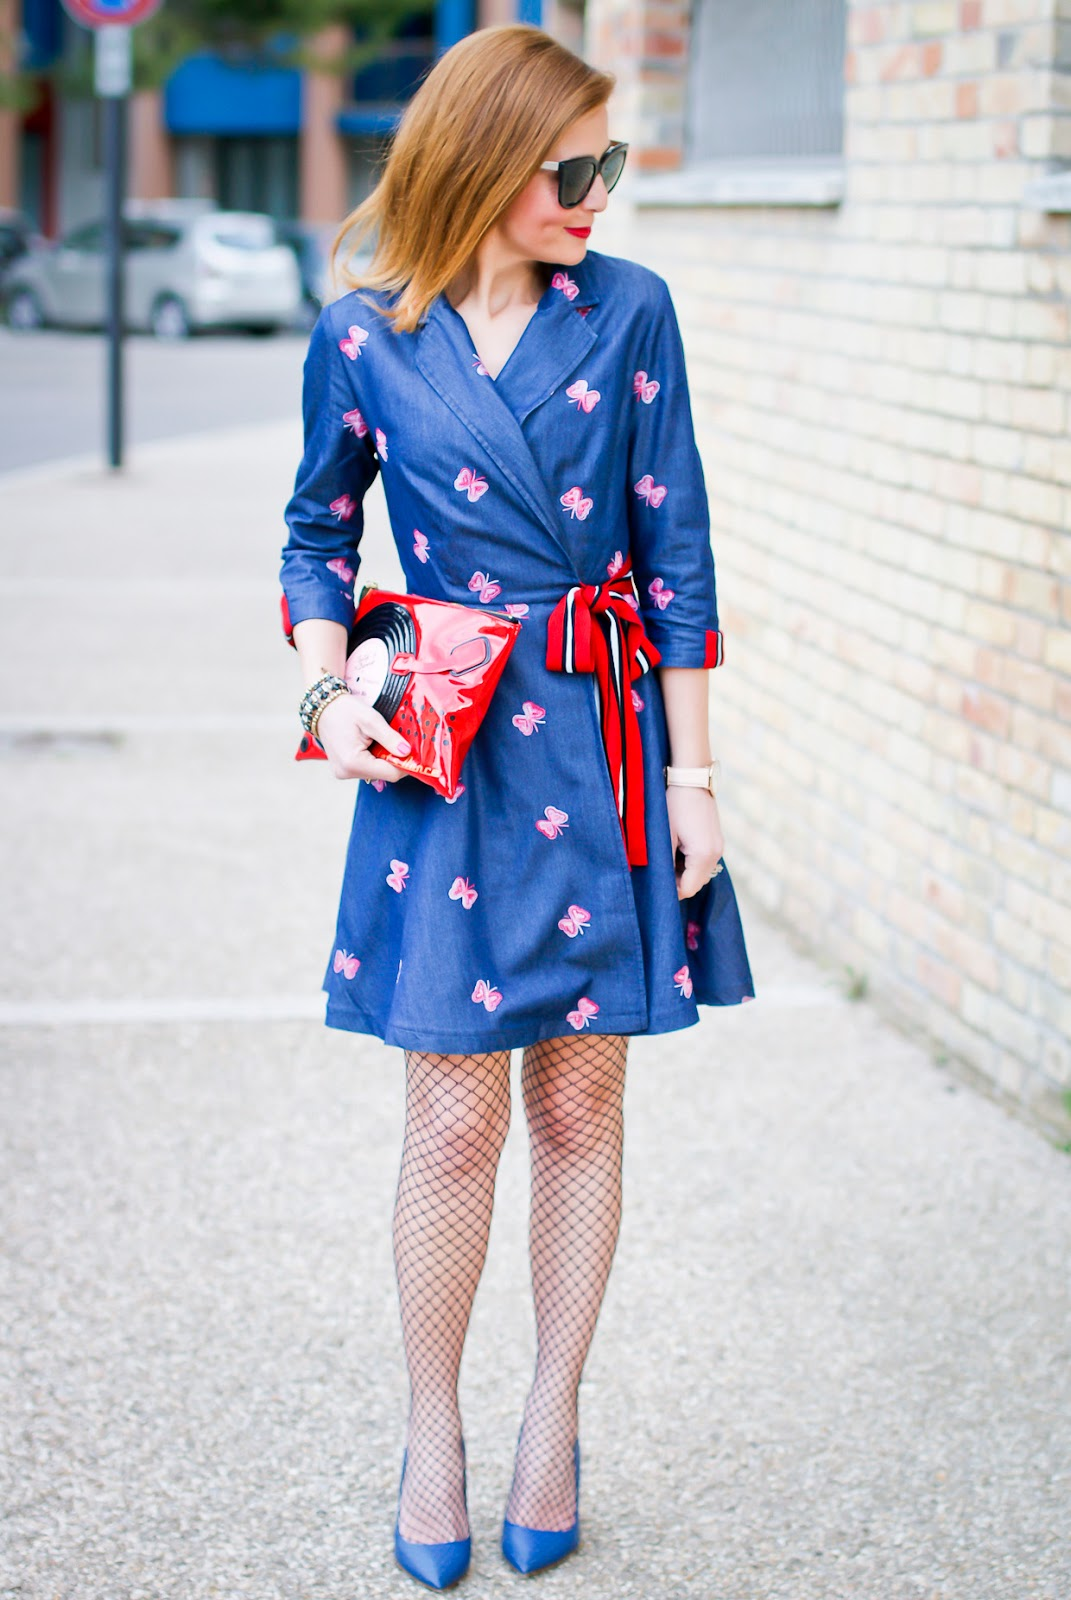 Butterfly denim dress from Metisu on Fashion and Cookies fashion blog, fashion blogger style